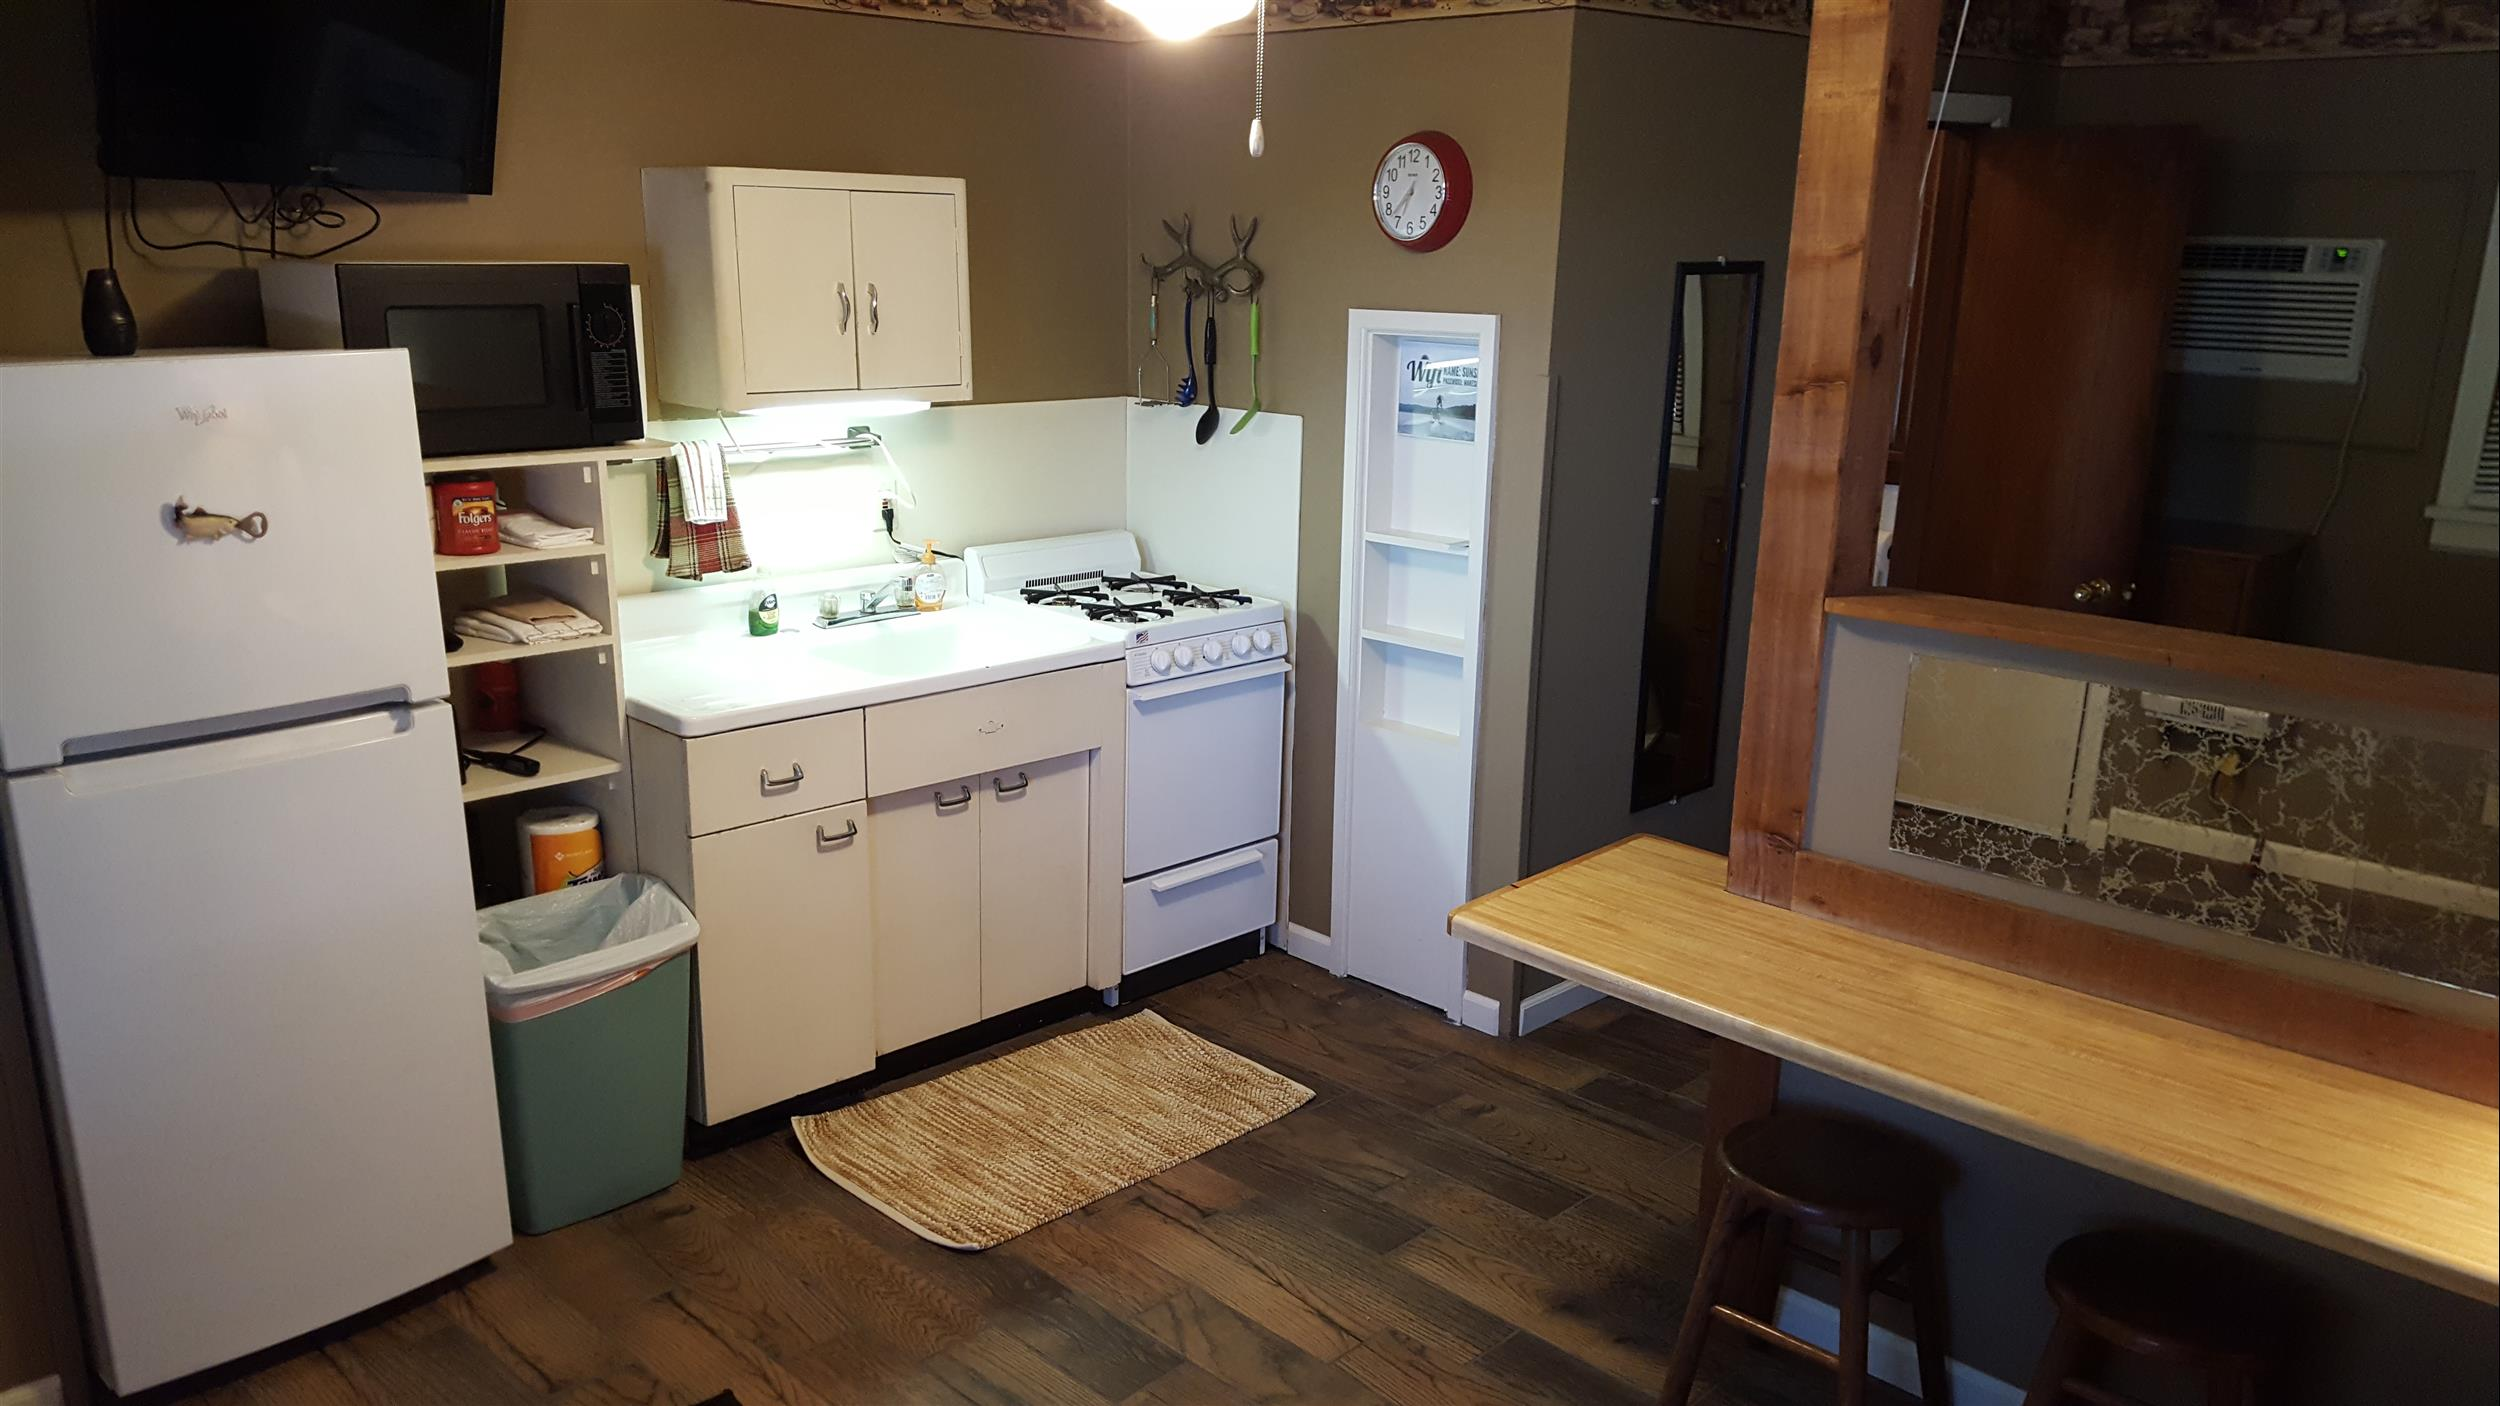 CABIN 4 KITCHENETTE